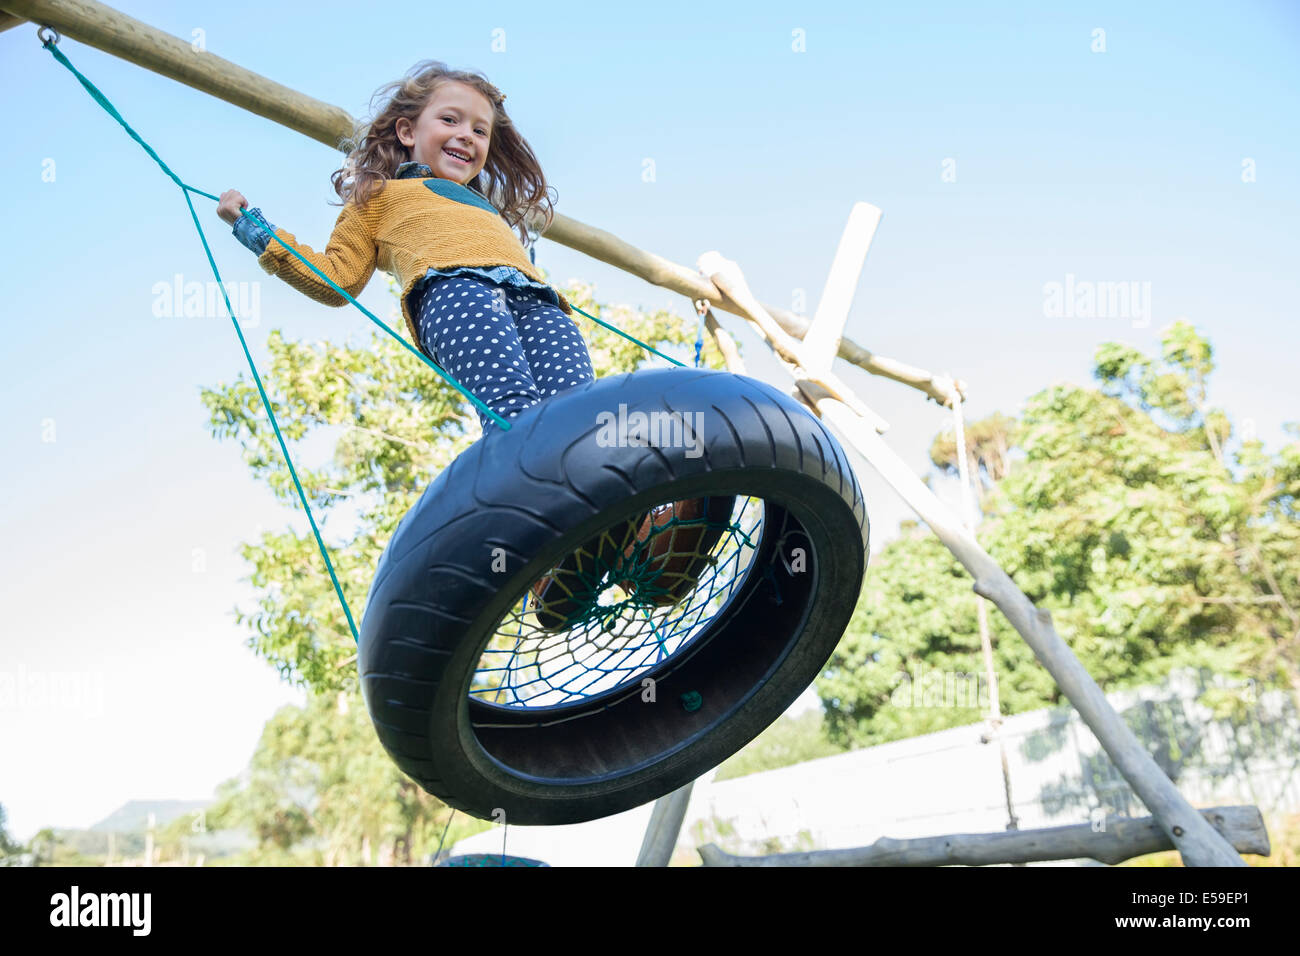 Girl playing on tire swing Photo Stock